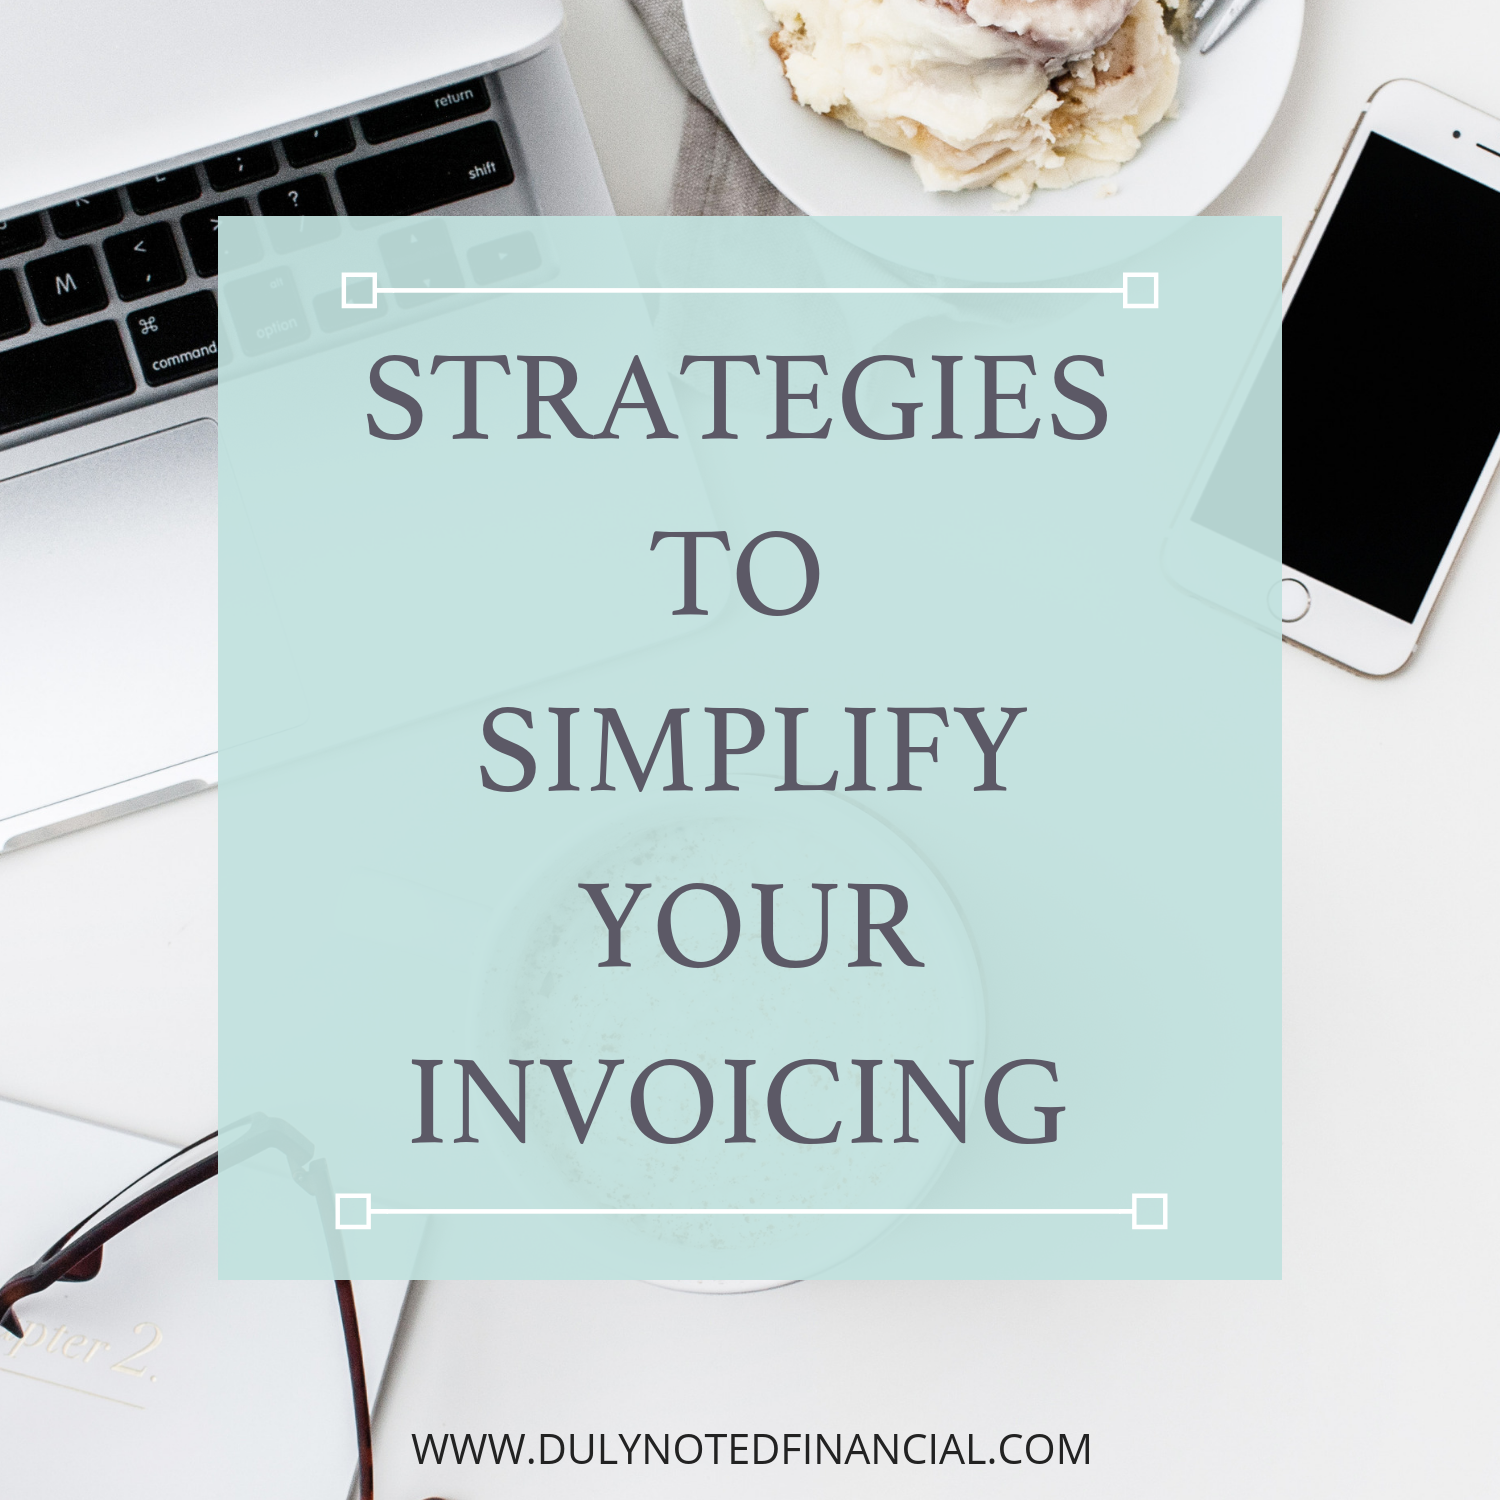 STRATEGIES TO SIMPLIFYYOURINVOICING.png